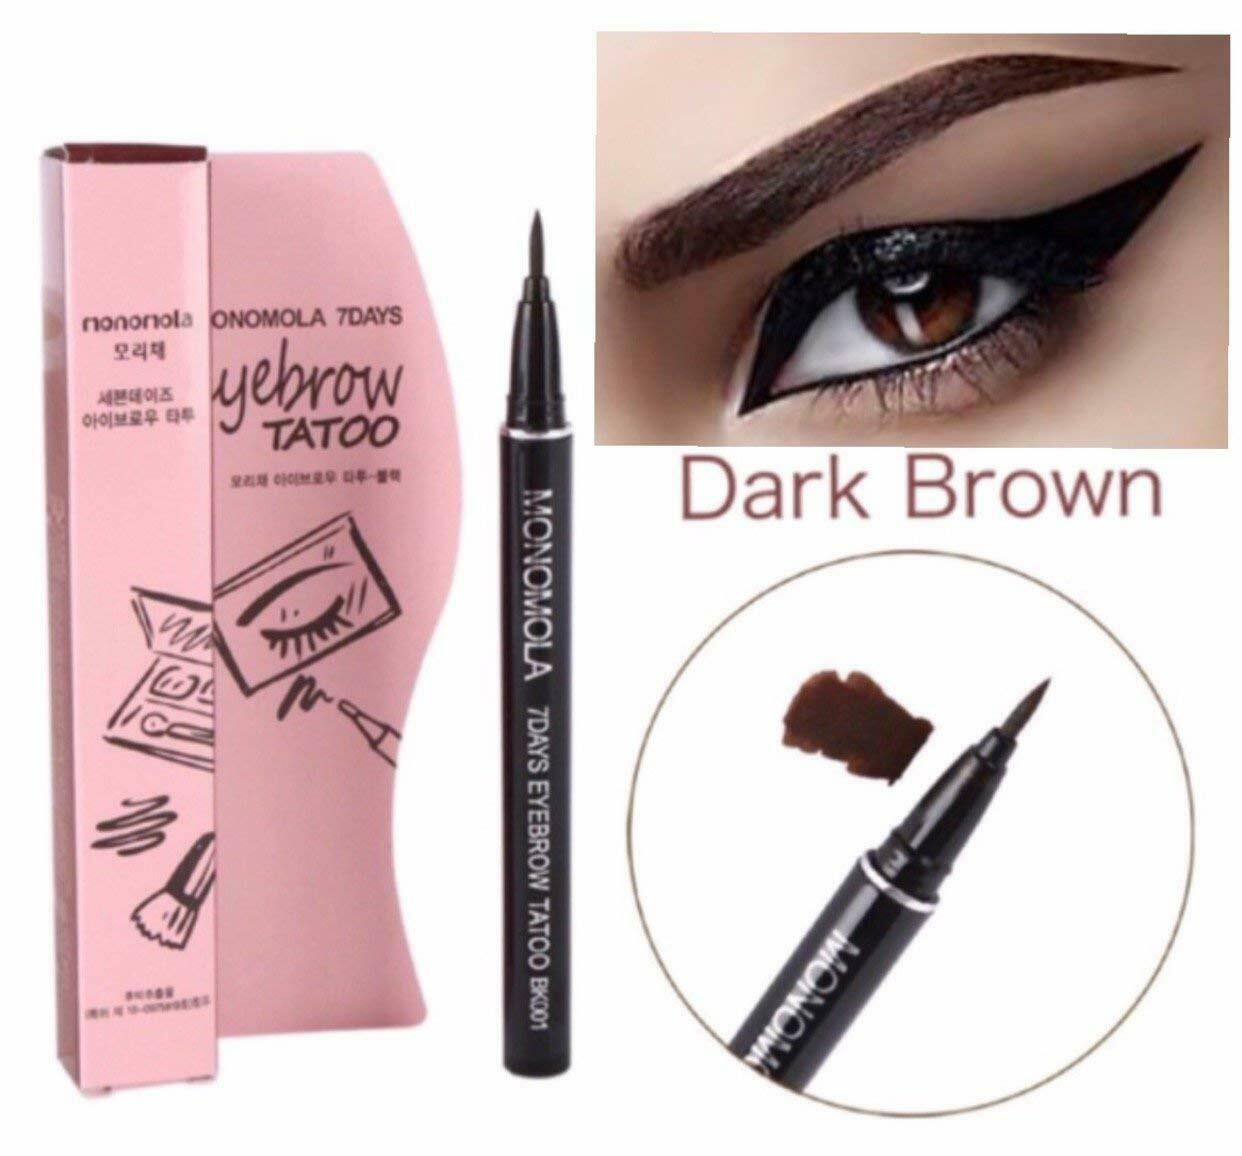 7 Days Eyebrow Tattoo Pencil Pen Liner Brown Long Lasting Eye Makeup Cosmetic US - FLJ CORPORATIONS